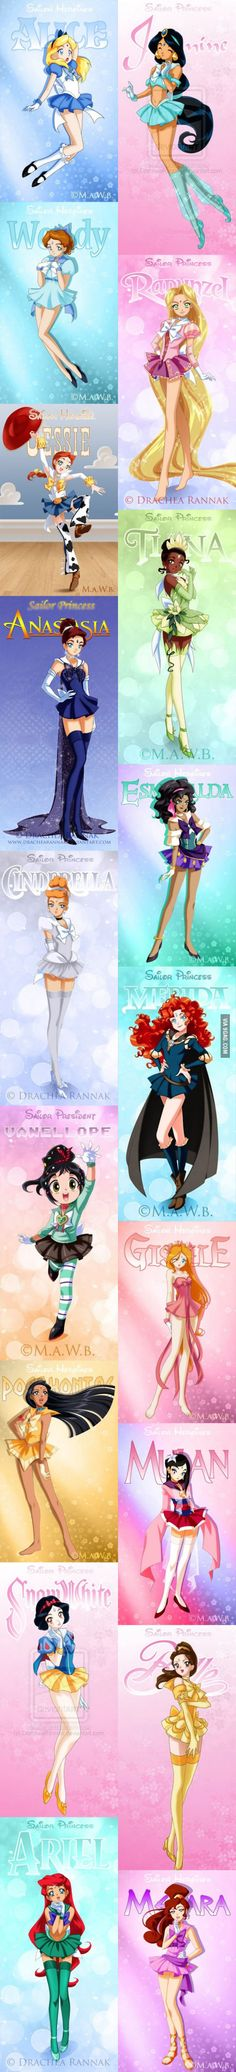 Disney heroines re-imagined as Sailor Moon characters